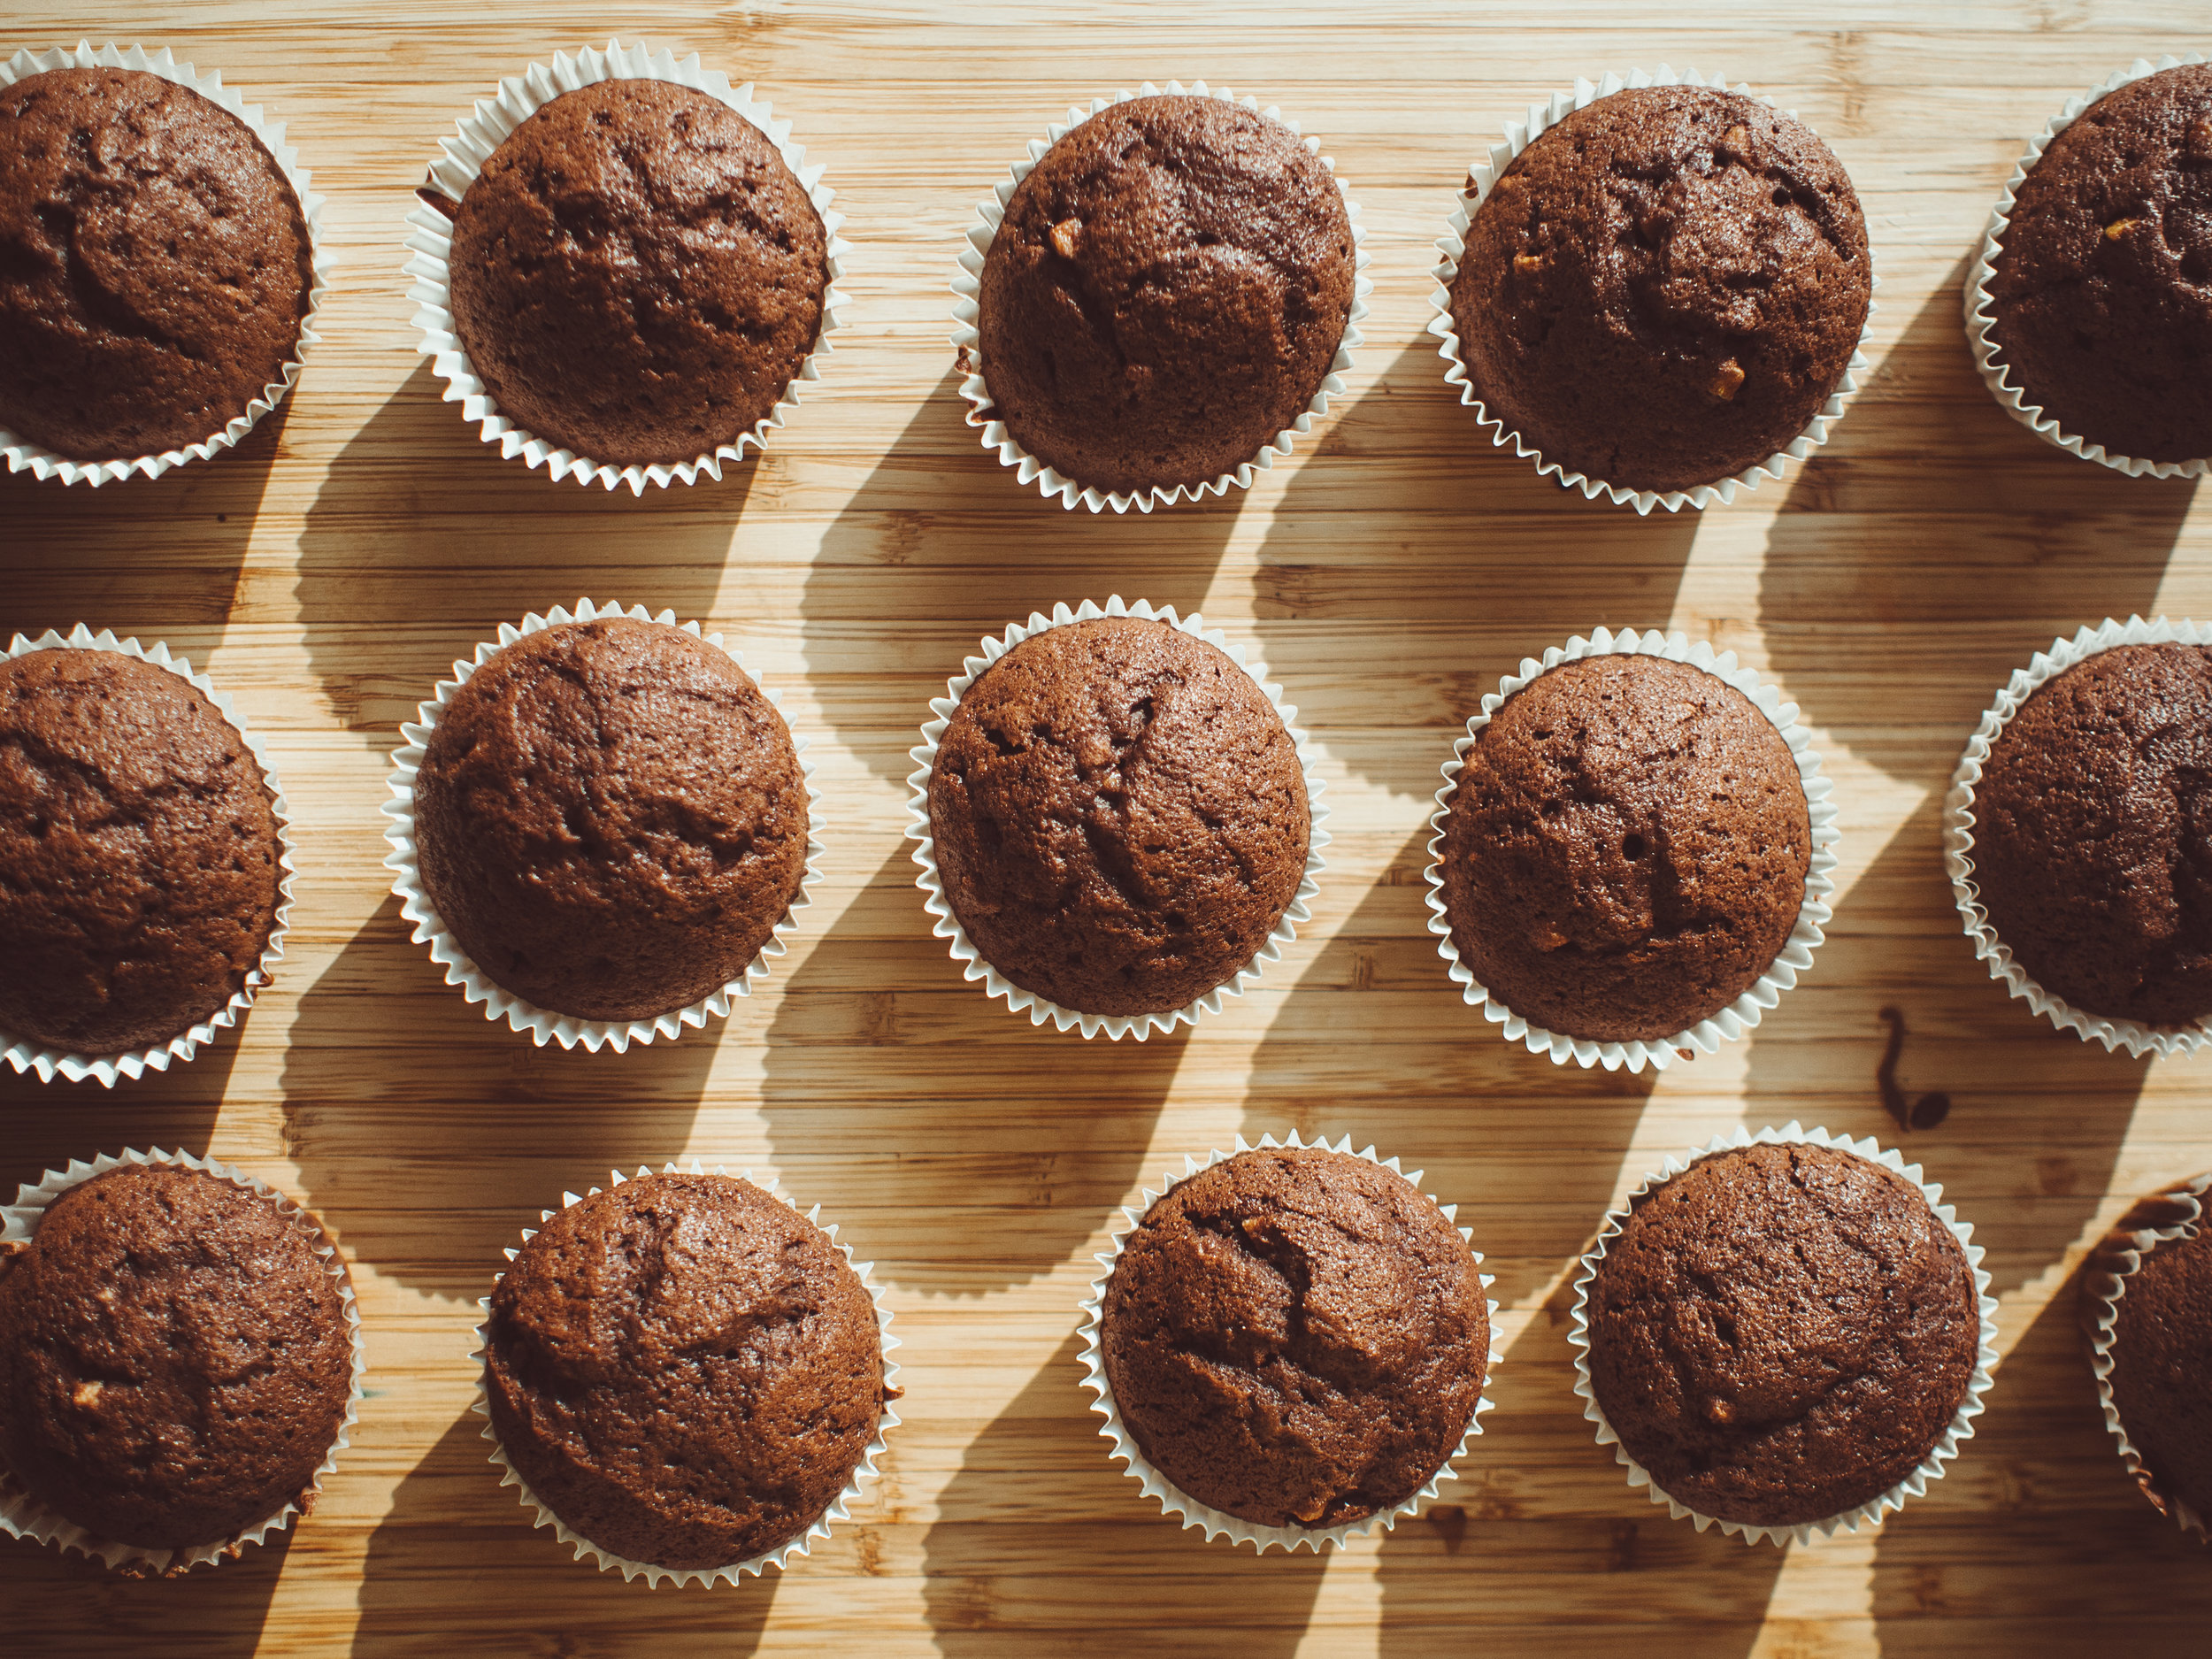 Canva - Chocolate Cupcakes on Brown Wooden Board.jpg